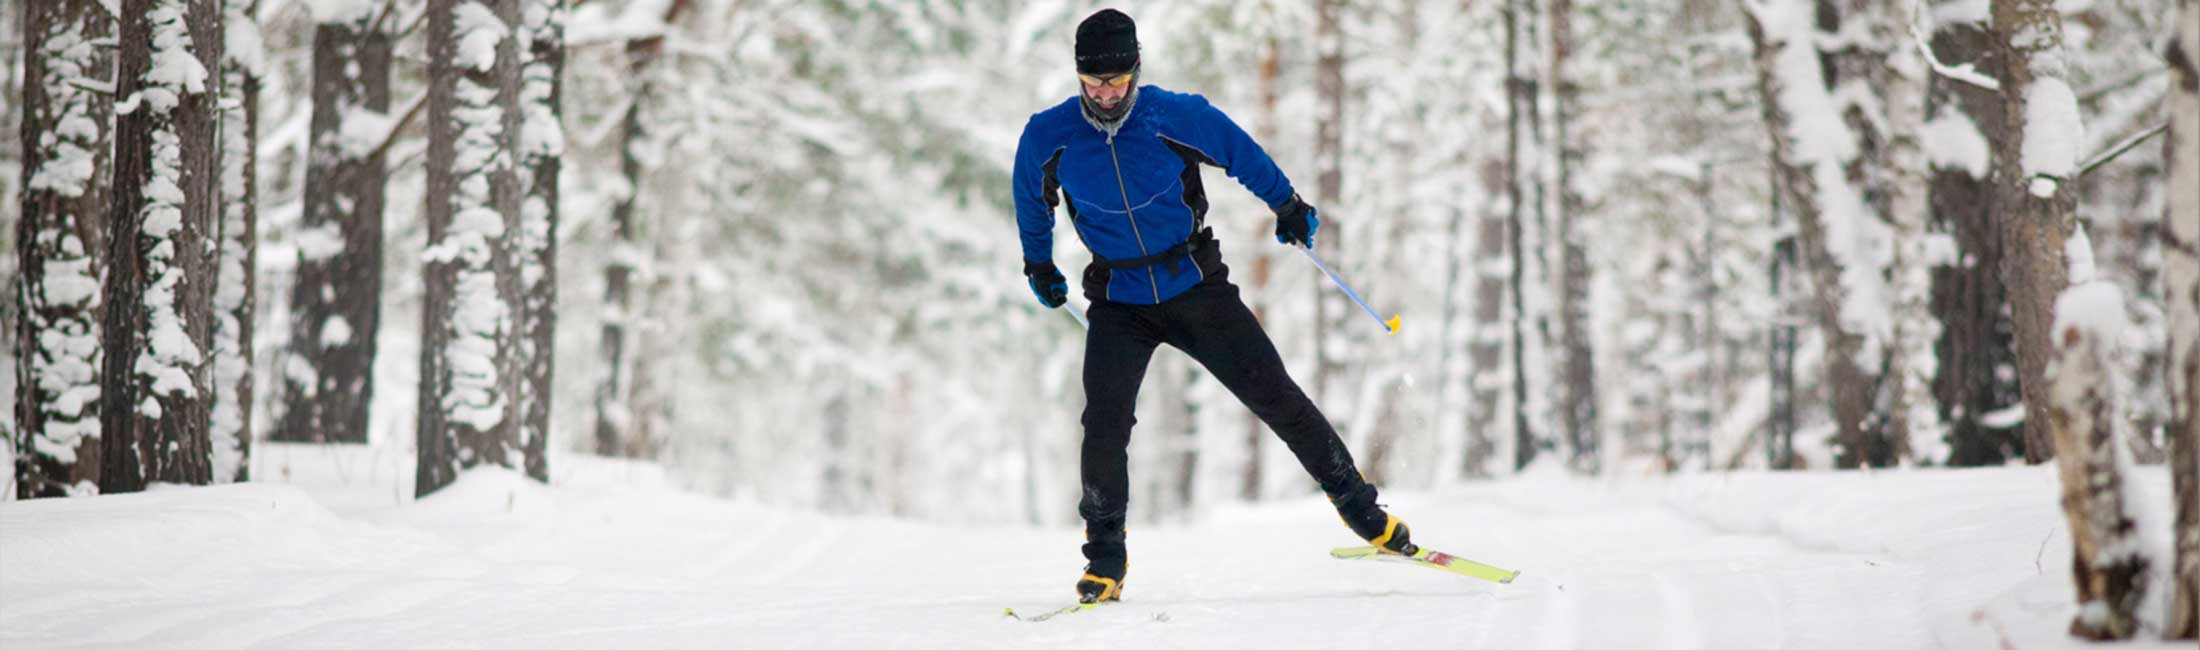 Cross Country Skiing in Missoula, Montana